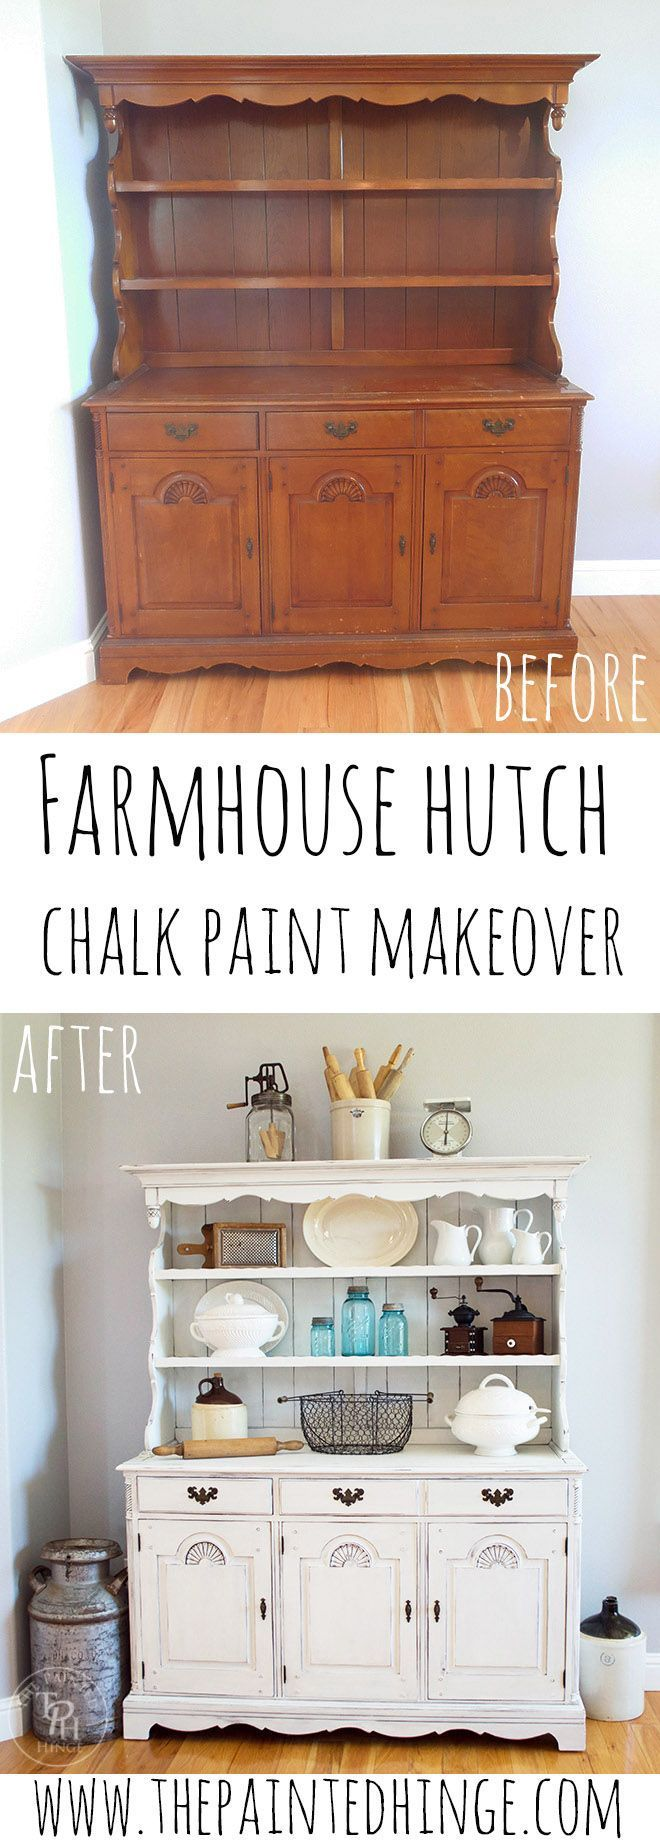 Farmhouse Hutch Makeover with Country Chic Paint | Country chic ... for Farmhouse Painting Ideas  110zmd